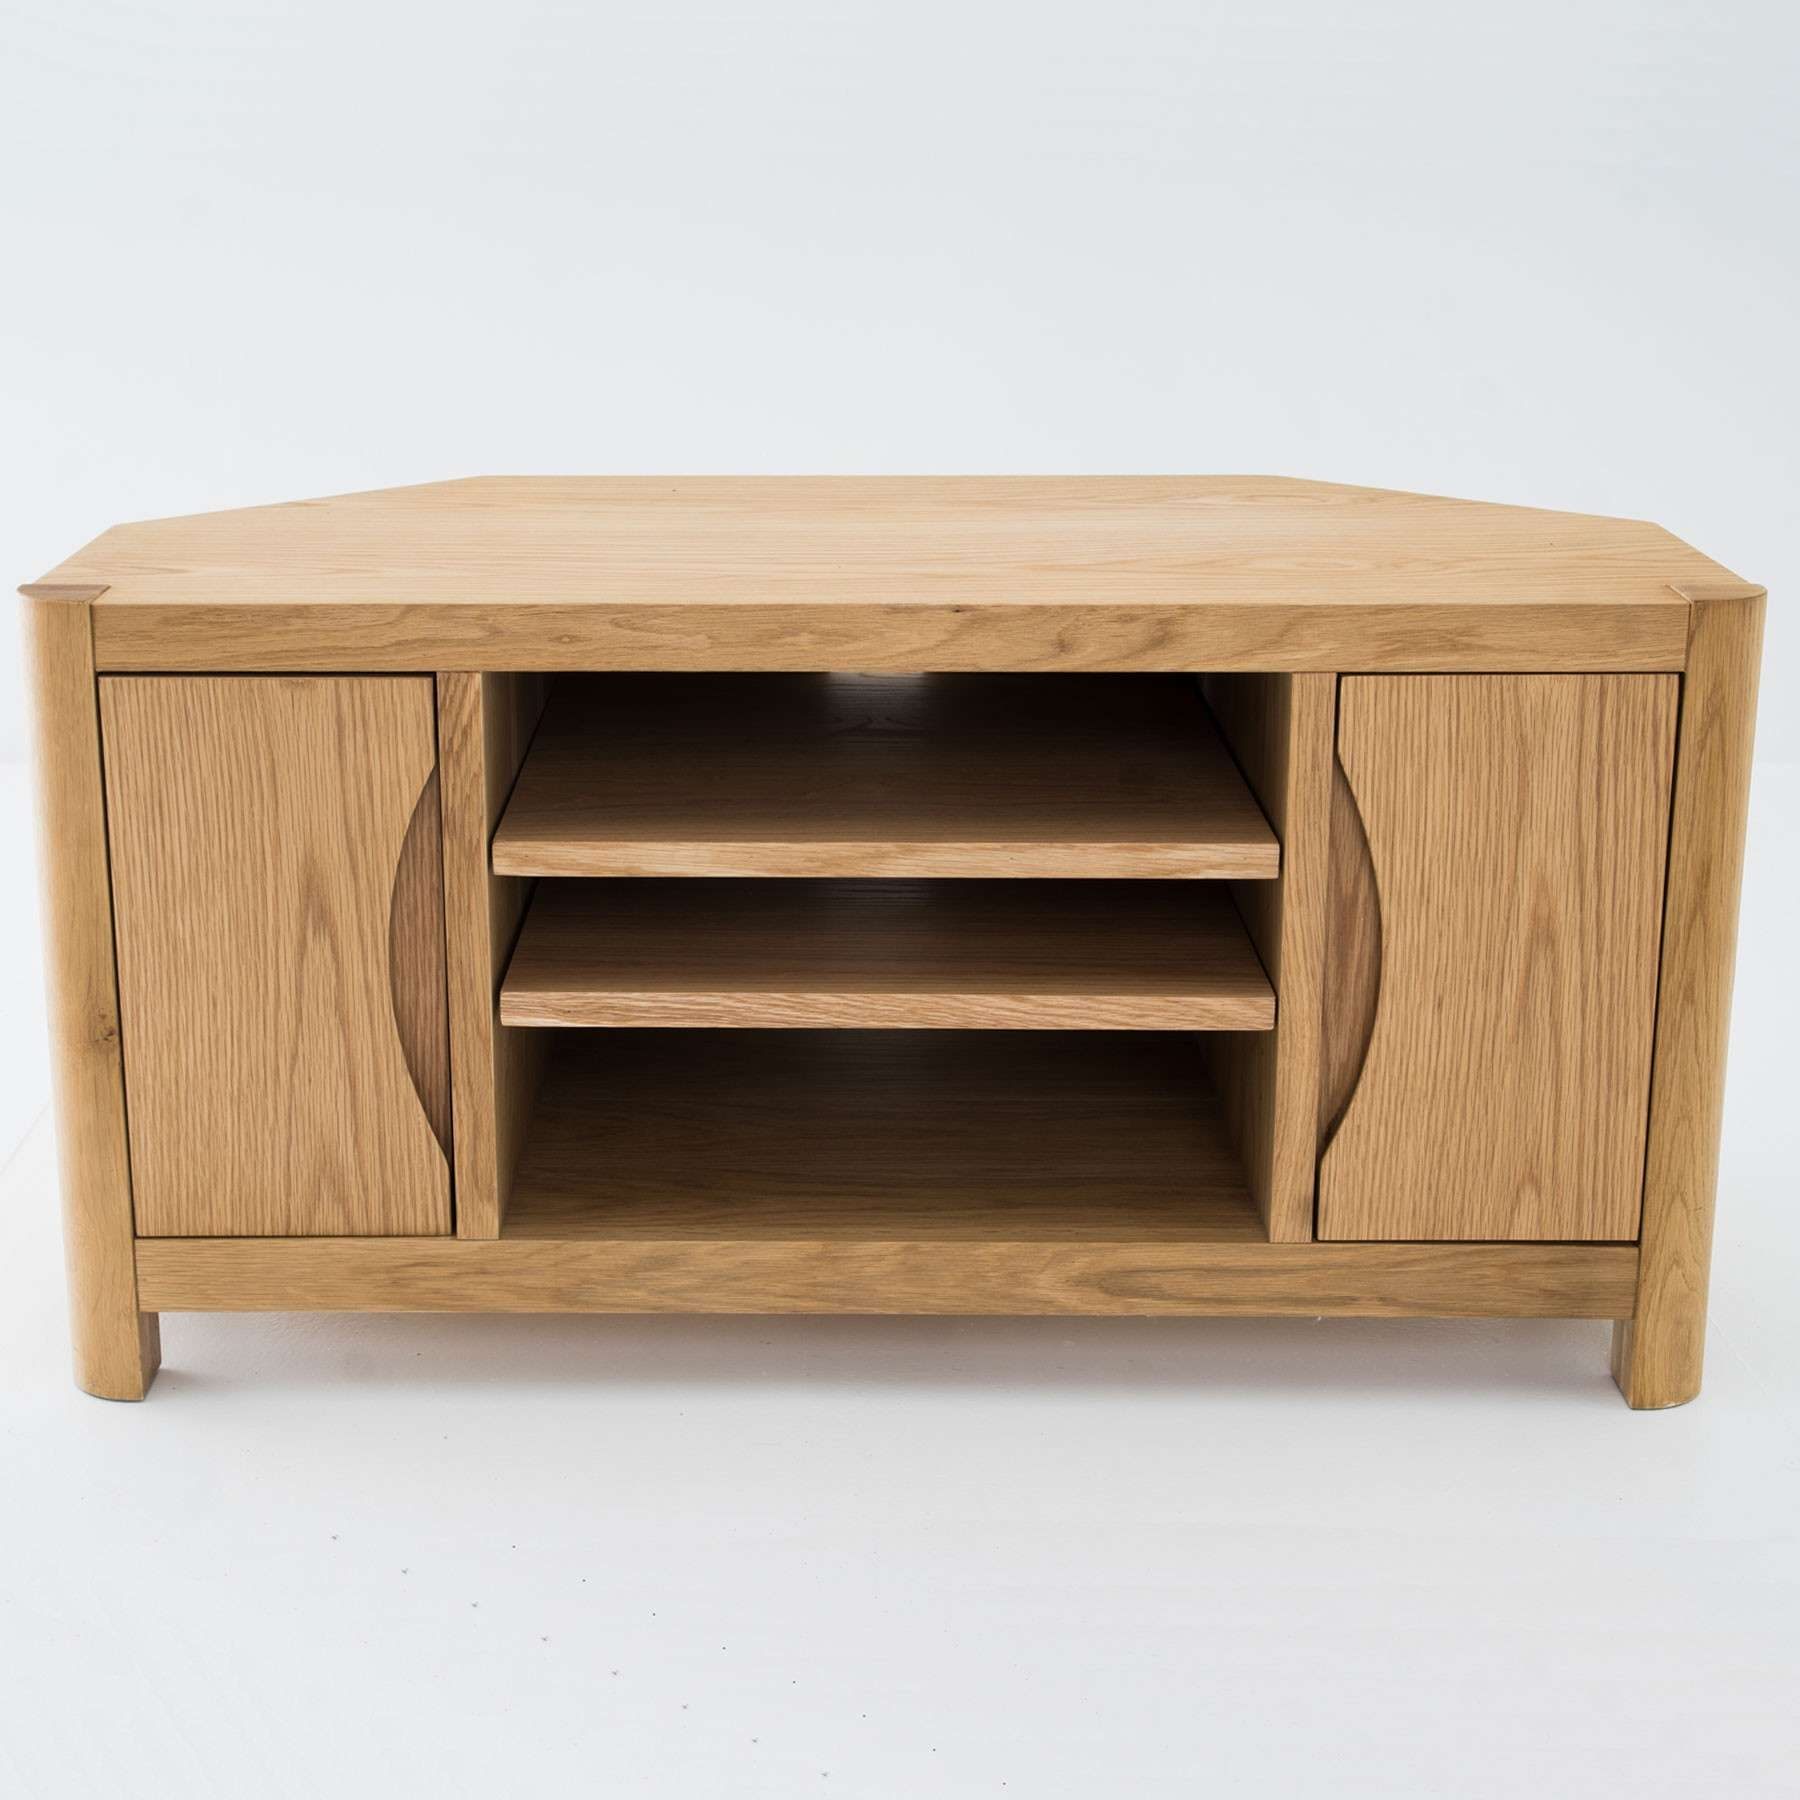 "Oslo Light Oak Corner Tv Stand For Up To 44"" Tvs Inside Light Oak Corner Tv Stands (Gallery 2 of 20)"